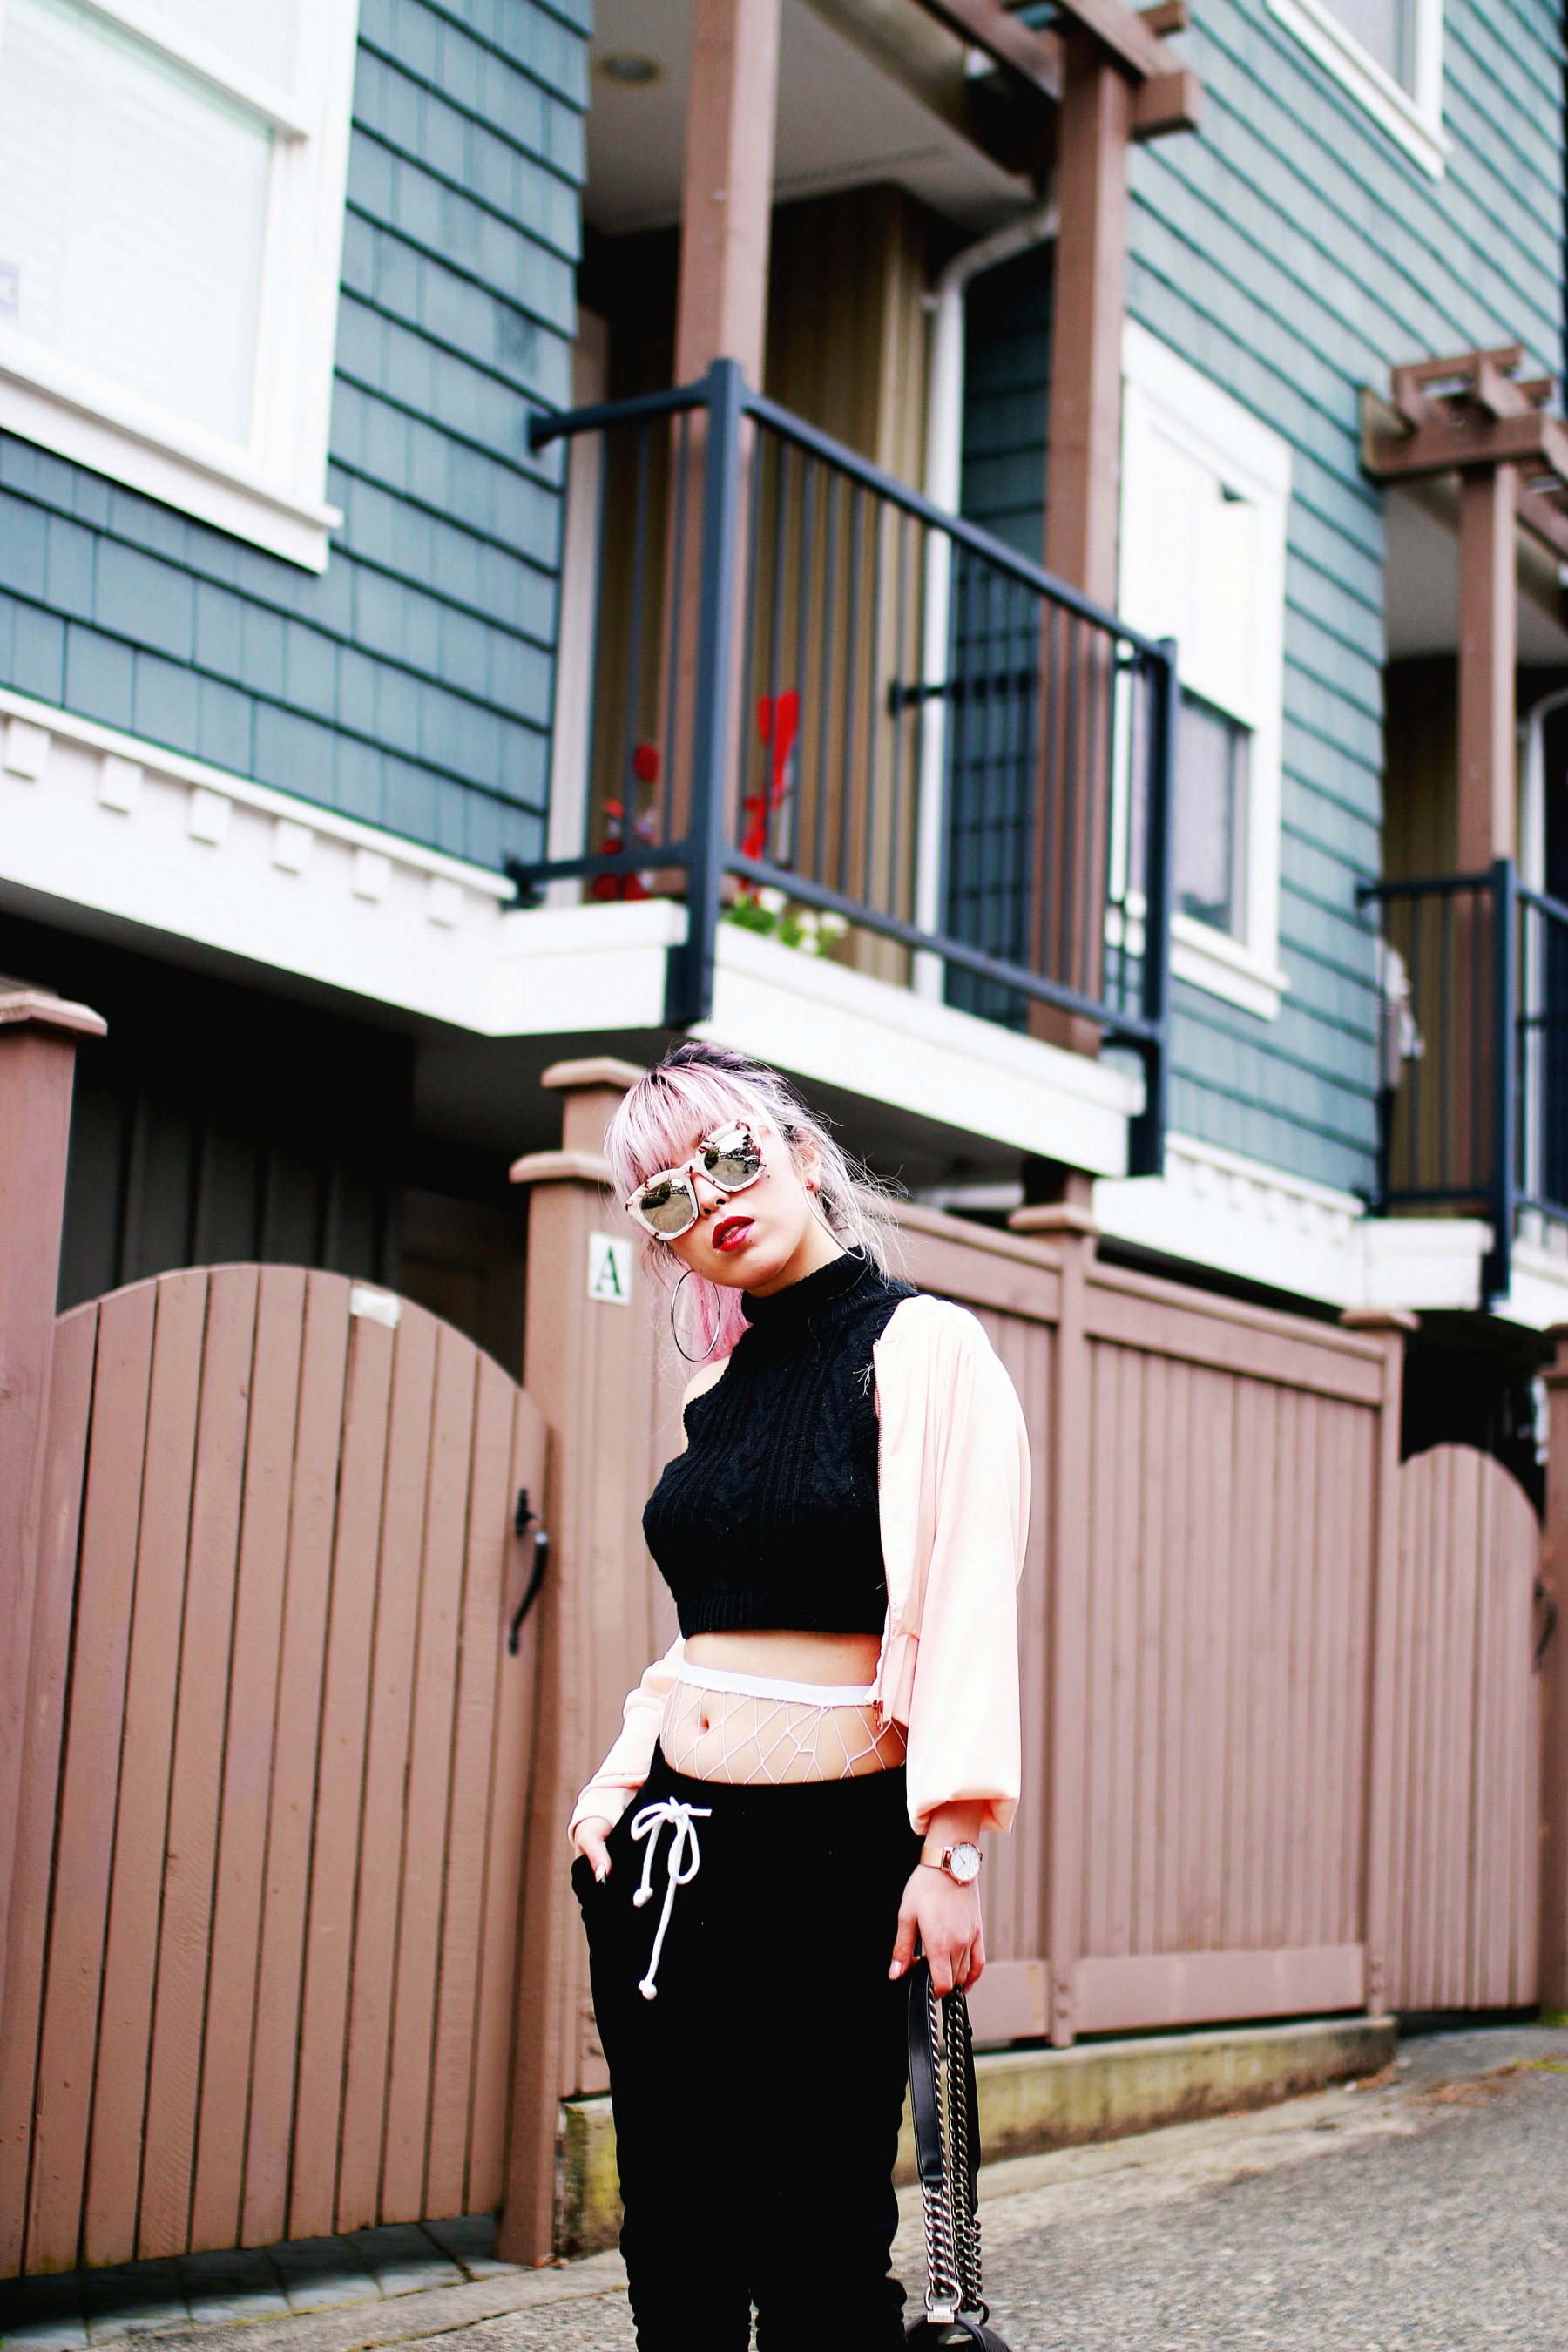 Zara Blush Silk Bomber Jacket_Missguided mock neck Crop top_ASOS fishnet tights_H&M sweatpants_Public Desire Boots_Chanel Bag_L'Oreal Red Lipstick_Free People Mirrored Sunglasses_Aikas Love Closet_Seattle Fashion Style Blogger_Pink Hair 8